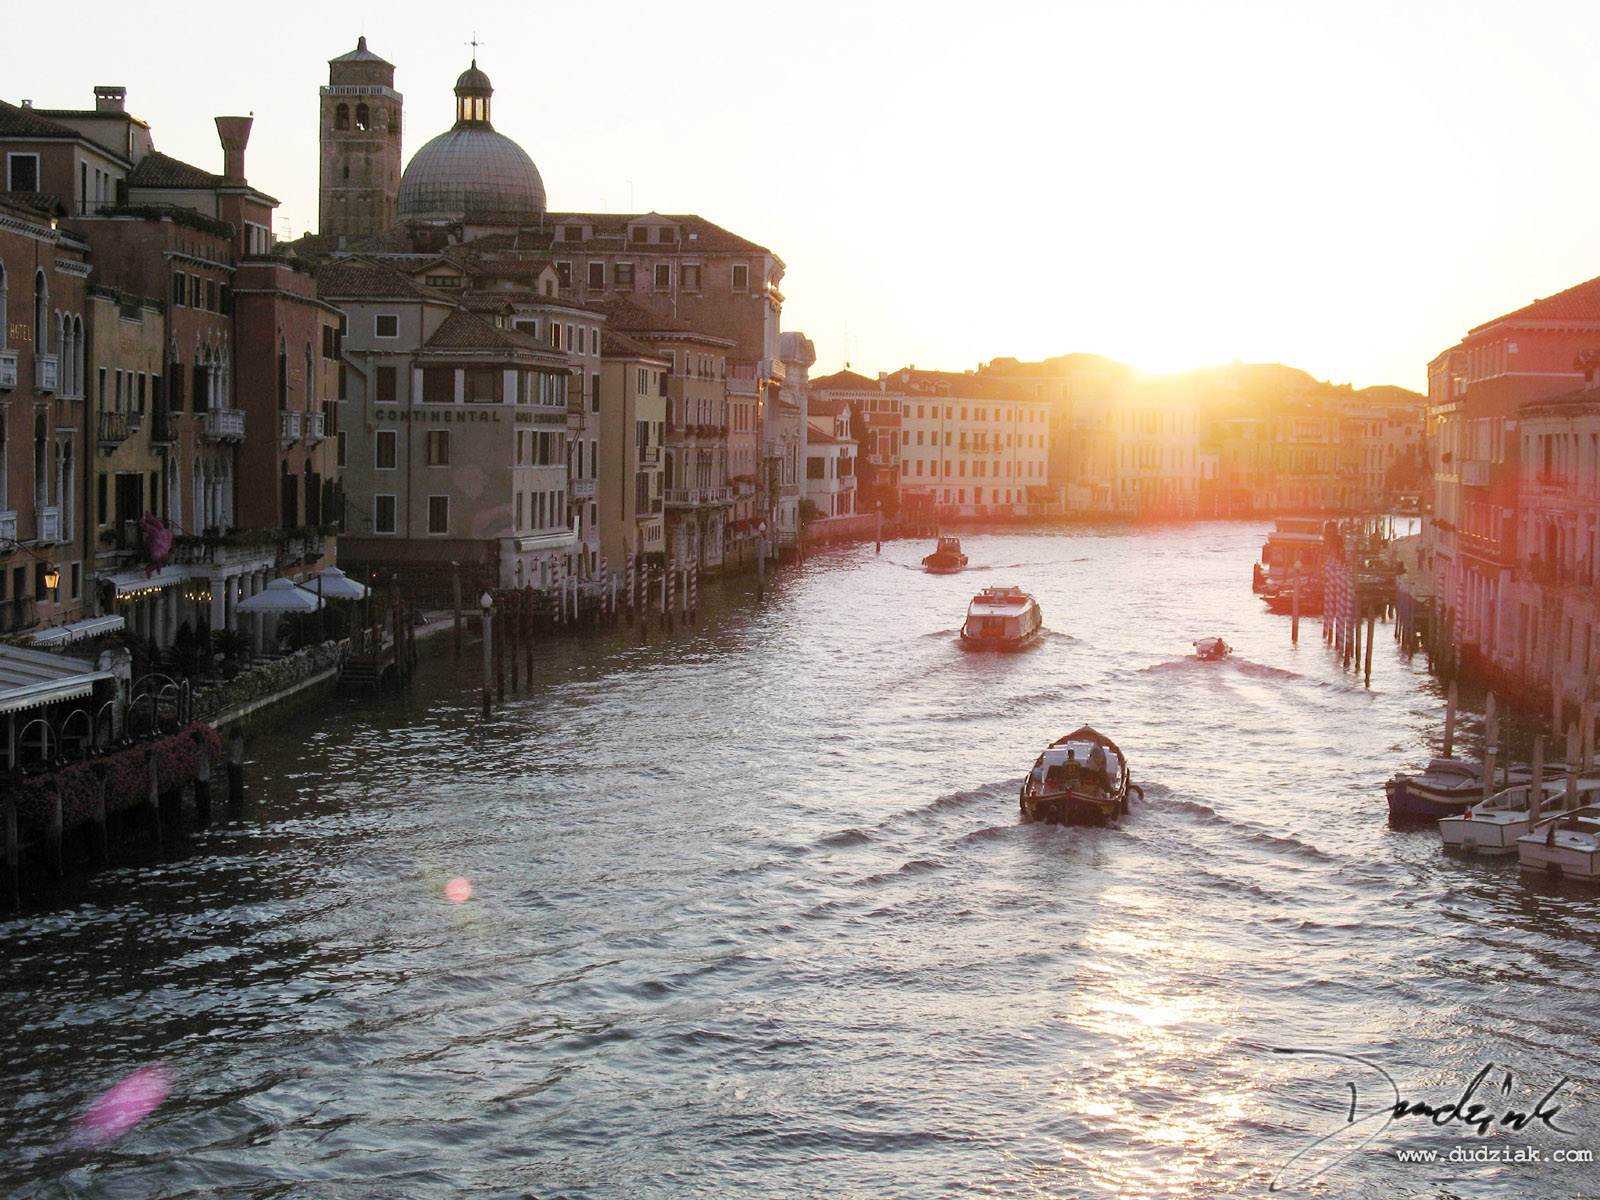 Picture of Venice's Grand Canal, taken at Sunrise.  I took this picture as I was leaving Venice at about 6:15 in the morning, crossing the Grand Canal at Ponte degli Scalzi for the last time.<br><br>[Lat, Long]:[45.44109603418056, 12.322733402252197]